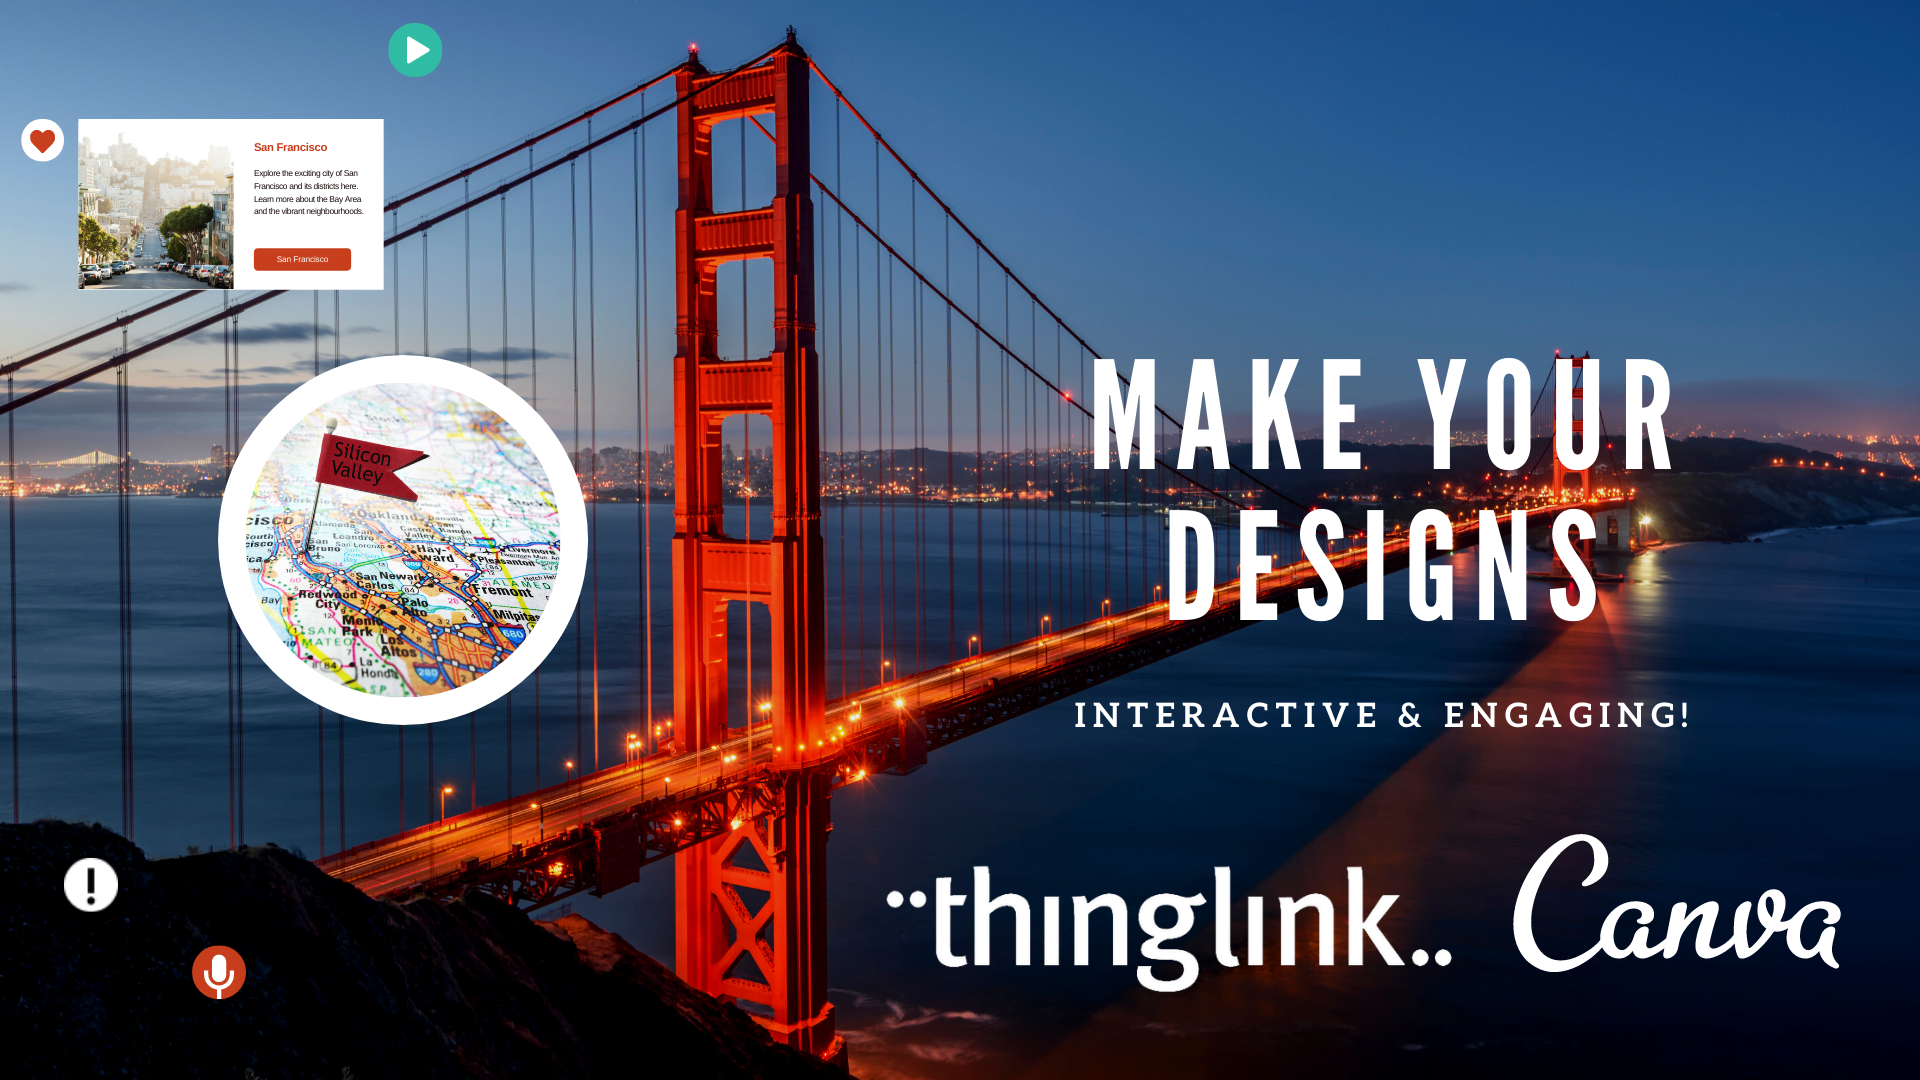 ThingLink Partners With Canva Bringing New Design Power to Millions of Visual Content Creators